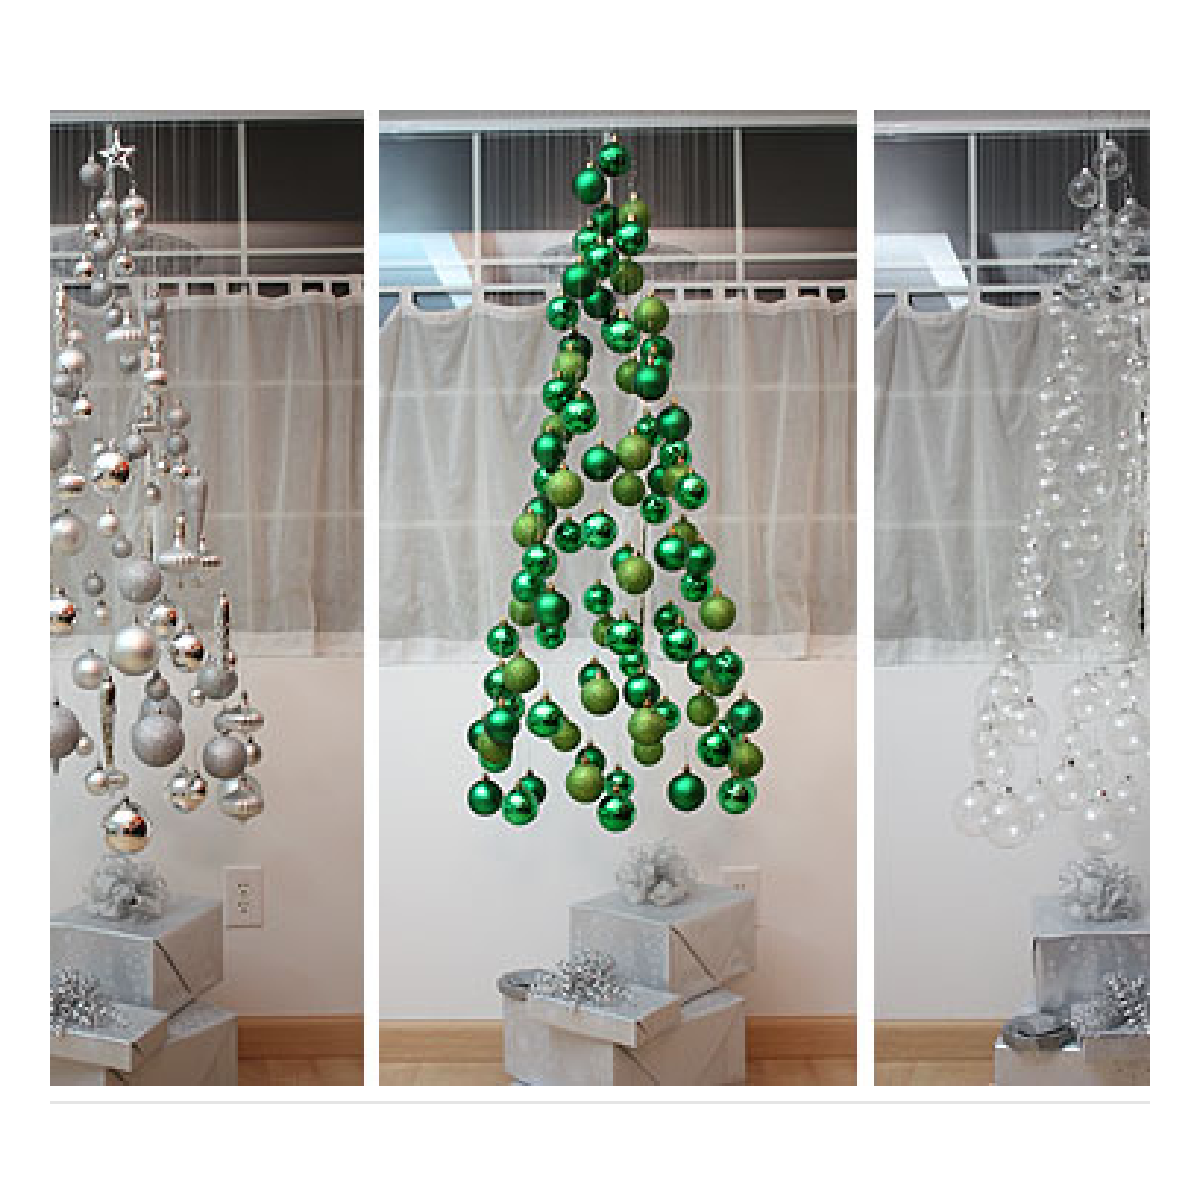 #246E34 Faire Sa Decoration Soi Meme 5425 decorations de noel faire soi meme 1200x1200 px @ aertt.com